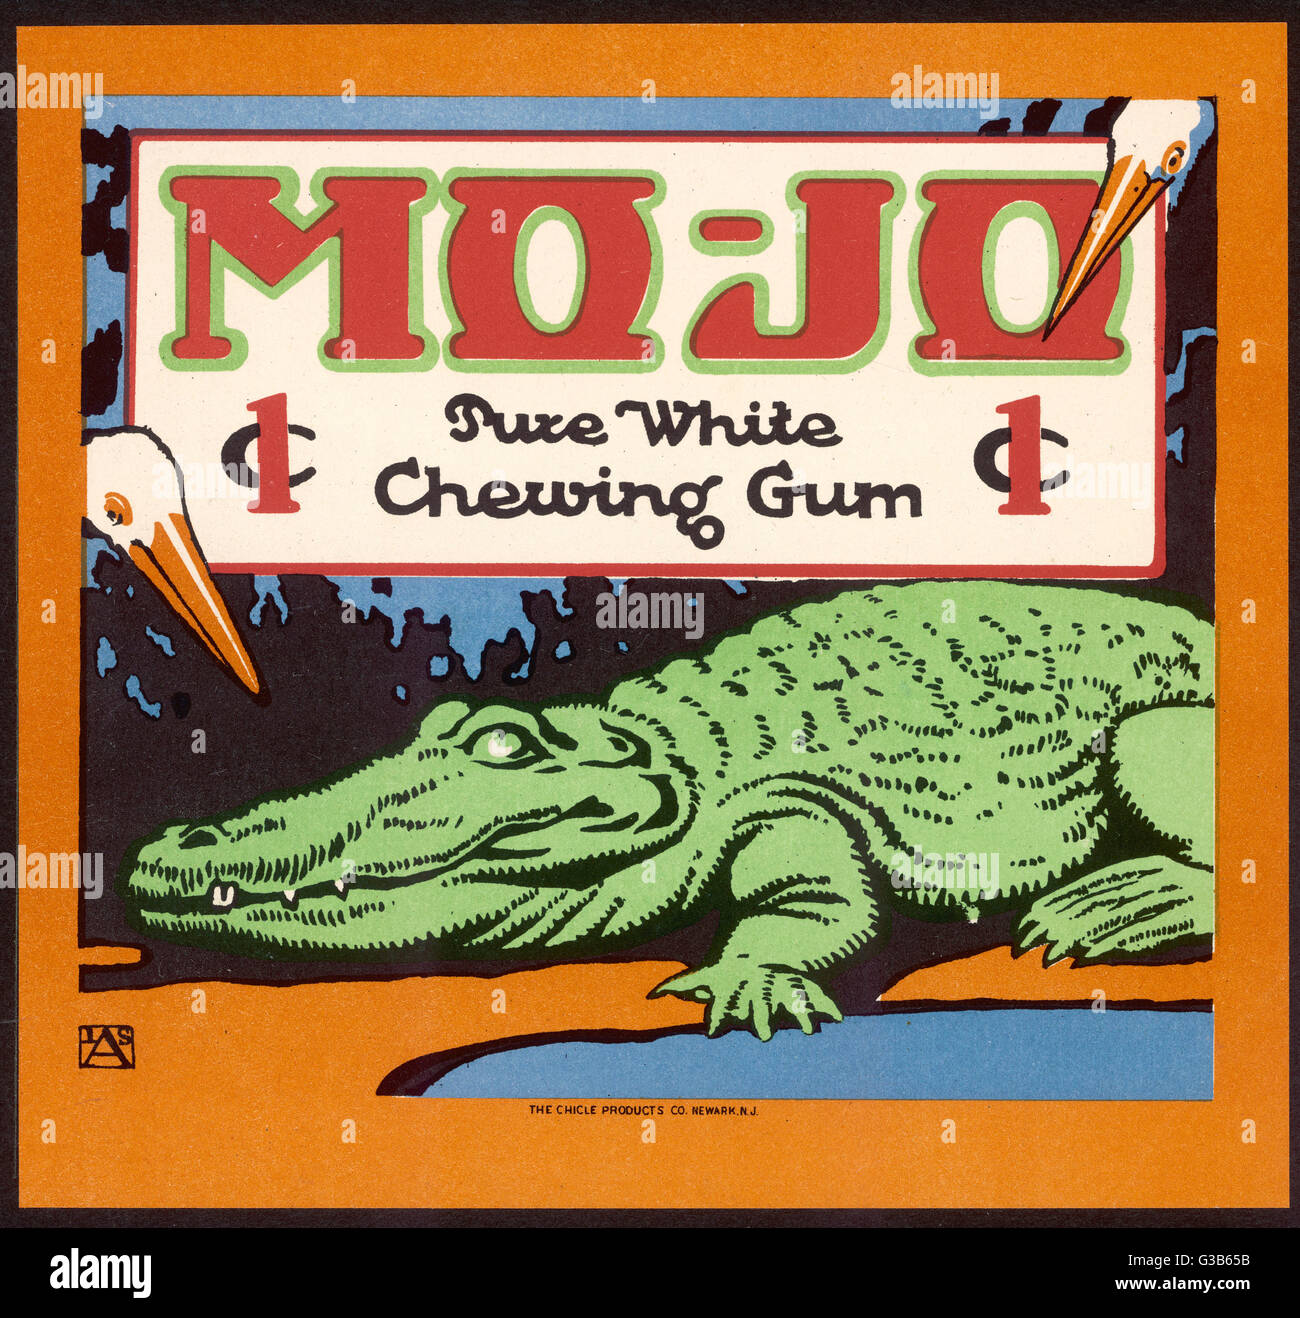 Mo-Jo pure white chewing gum, one cent,  apparently popular with crocodiles      Date: early 20th century - Stock Image